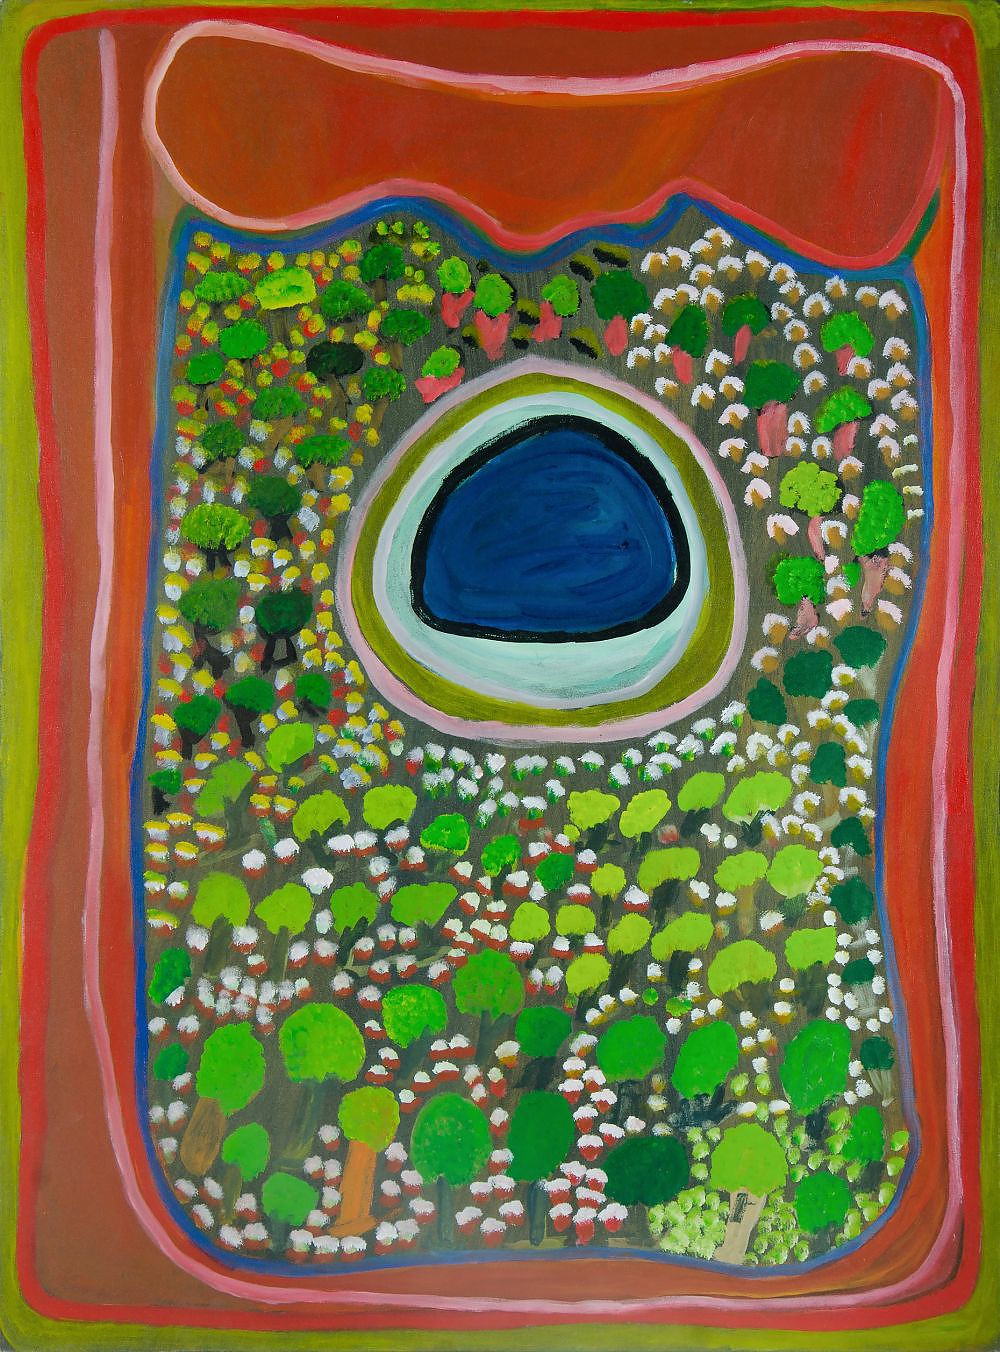 'CHUGUNA, Jukuna Mona (b.1933) Puntarr, 2003. Inscribed Mangkaja Arts (cat PC236/03) Acrylic on Canvas'